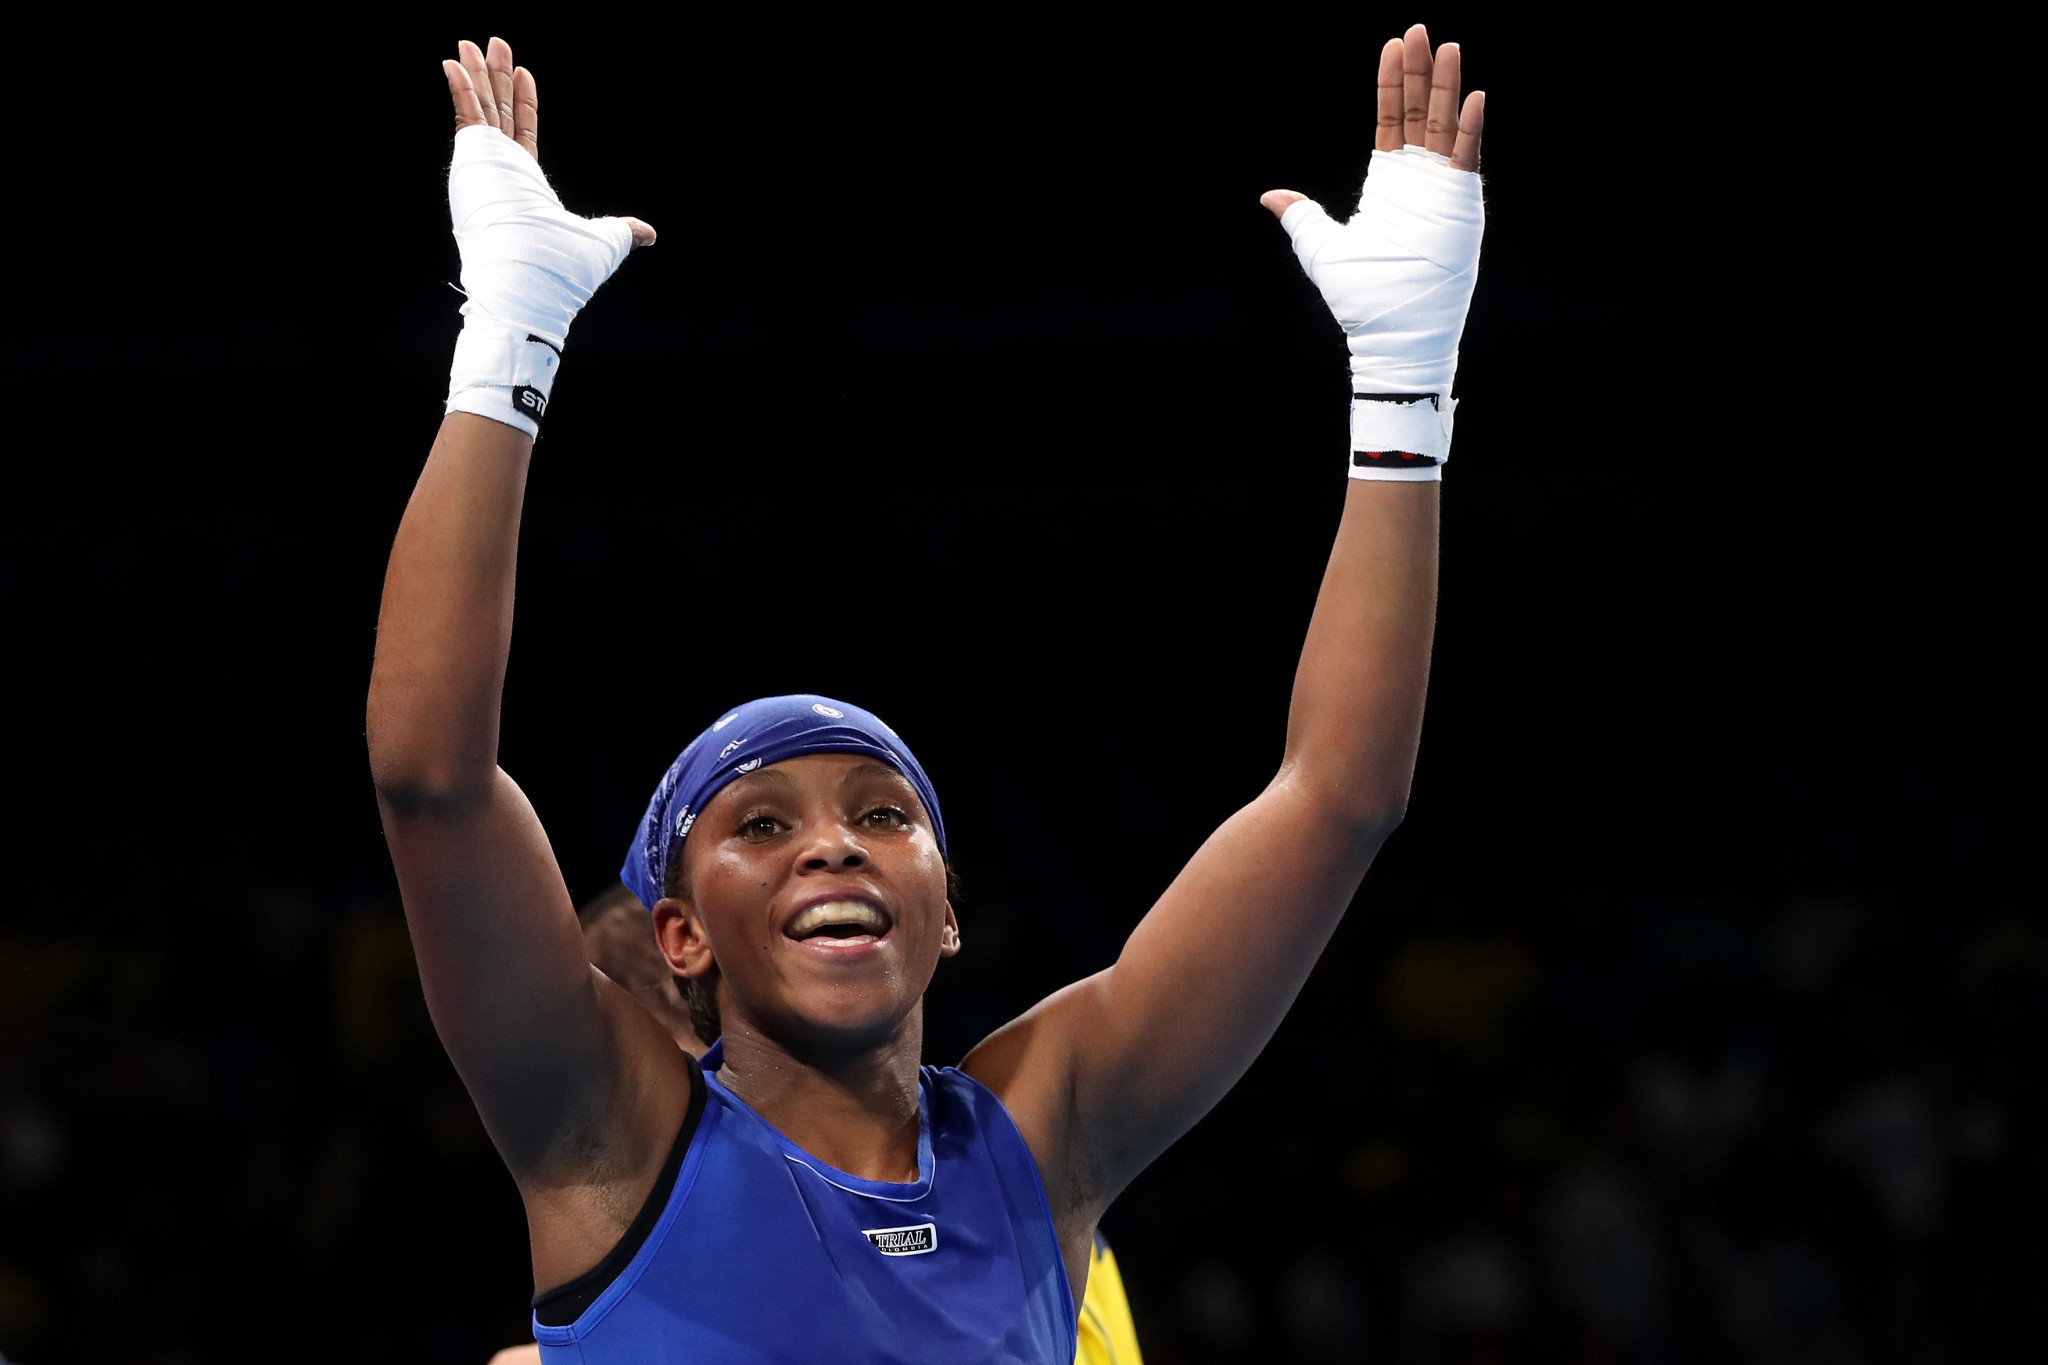 Olympic bronze medallist wins opening bout at AIBA Women's World Boxing Championships in New Delhi